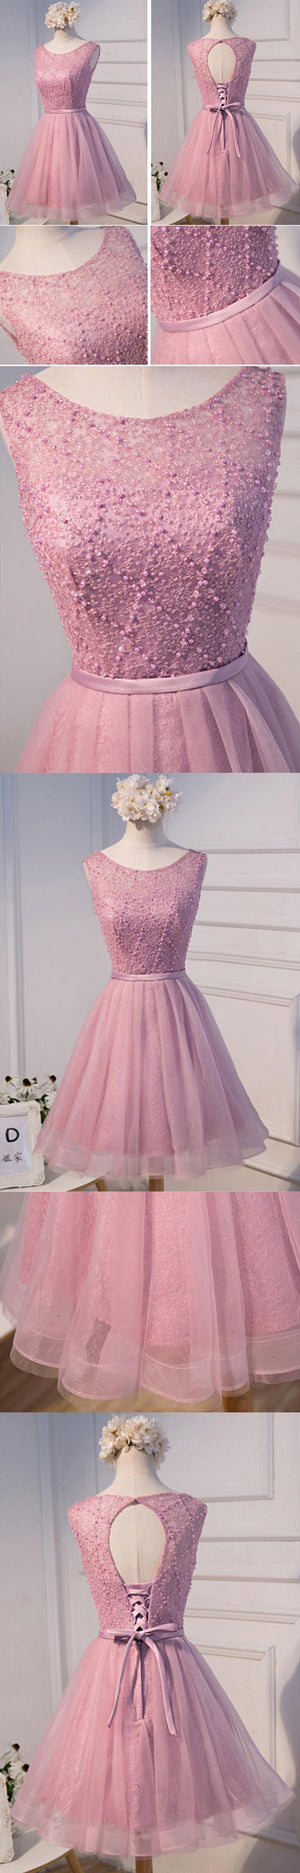 Elegant Diamond Beads  Lace Organza Sleeveless Scoop Neckline Lace Up Back For Teen Lovely Homecoming Dress,BD0127